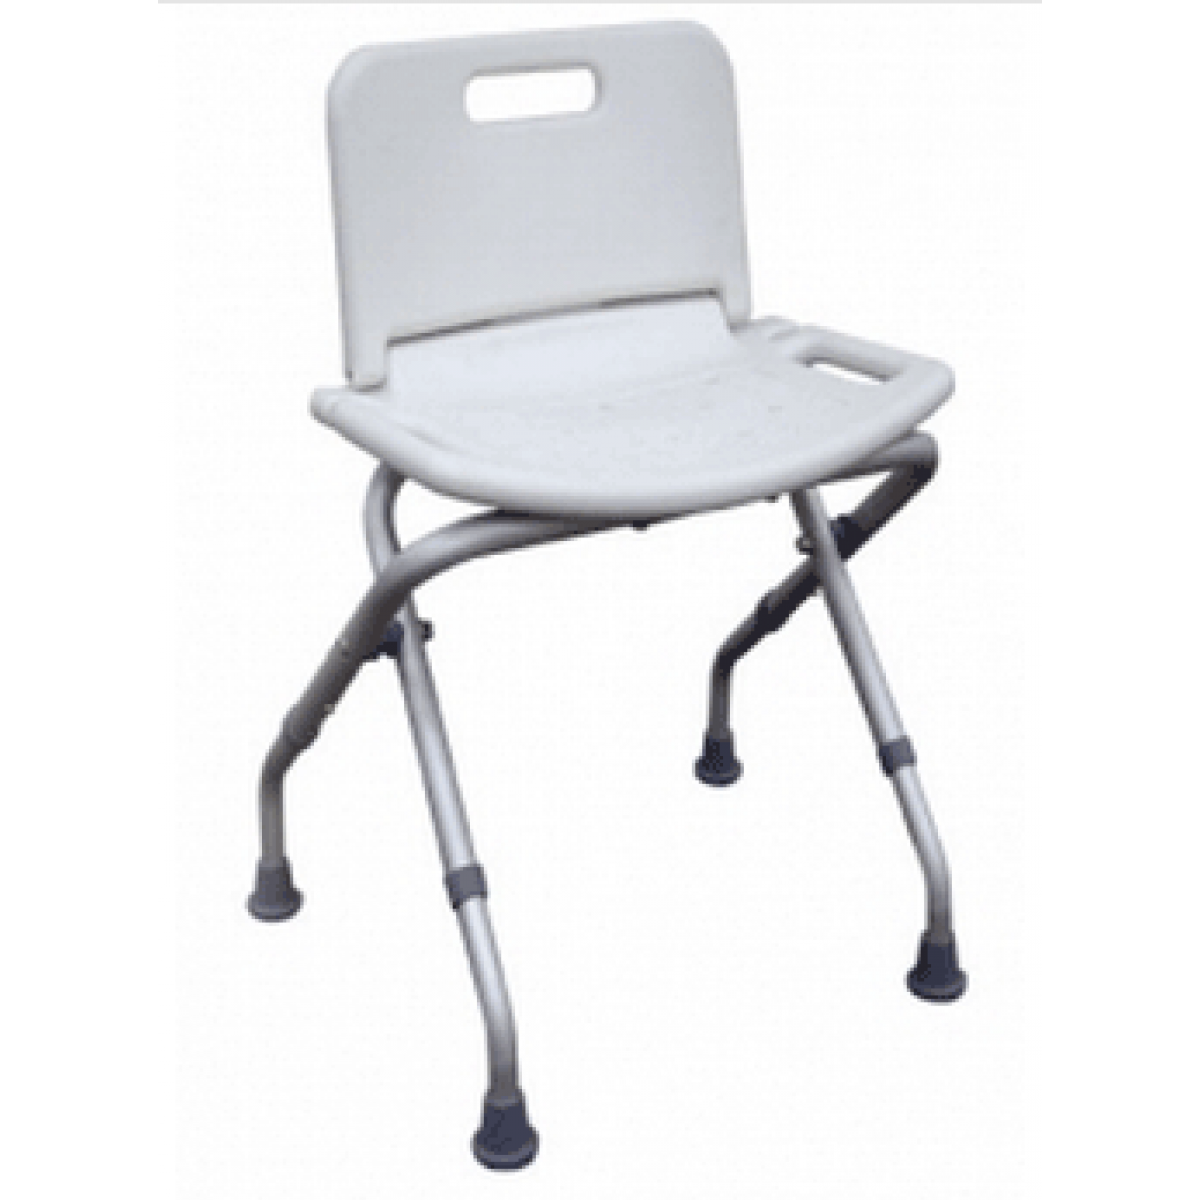 Folding Bath Bench by Drive Medical - 12487